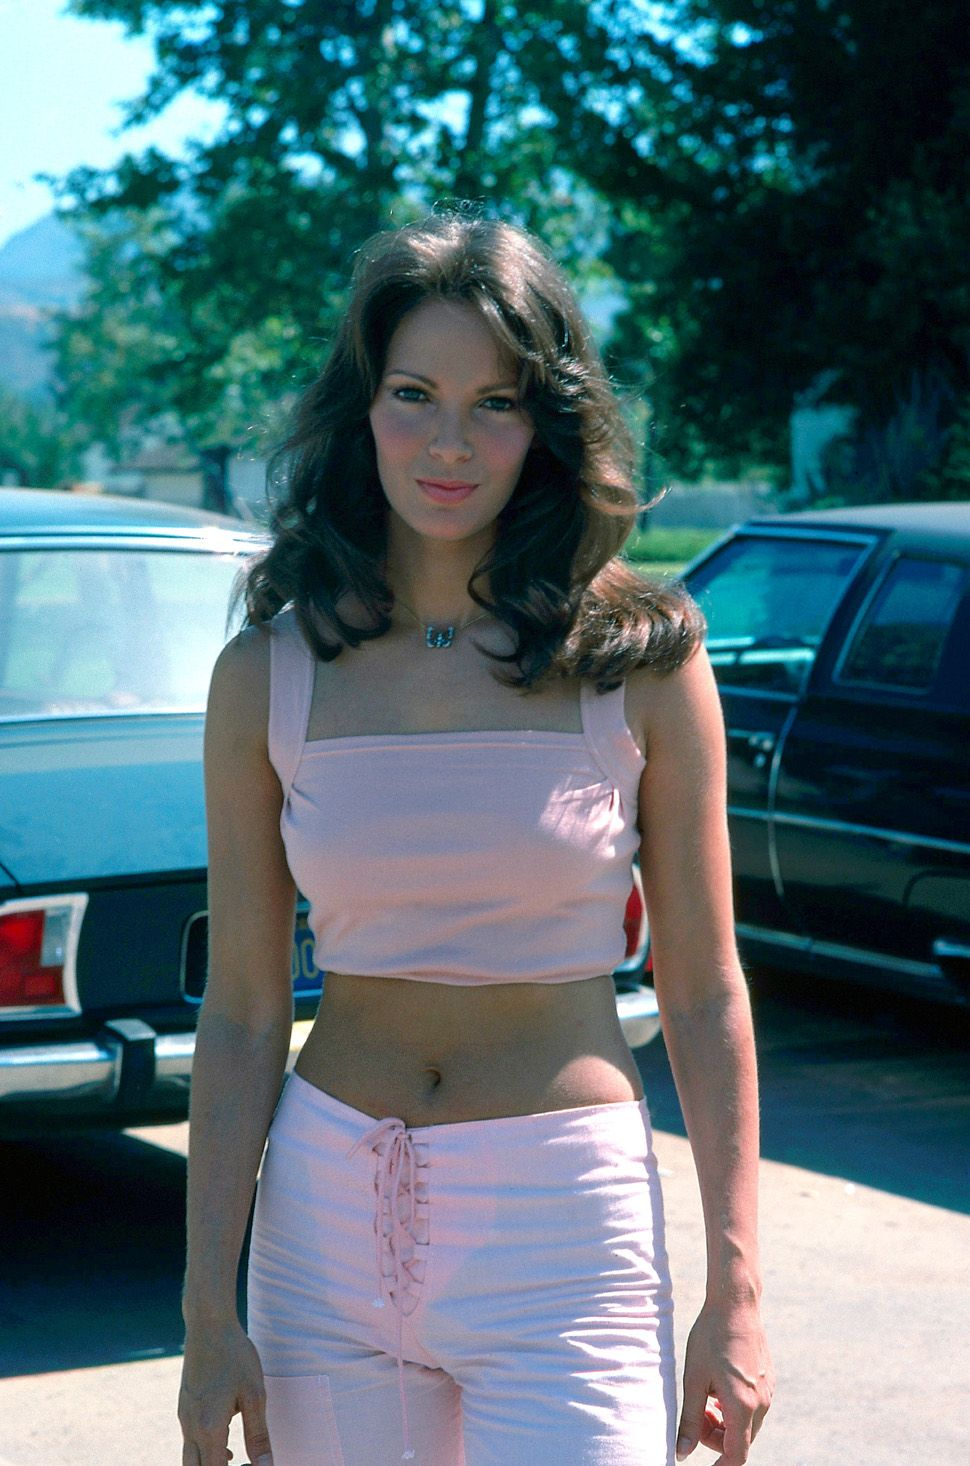 c9e9fba0855 Jaclyn Smith 70s - Known For Playing Kelly Garrett on Charlie's Angels.  Description from pinterest.com. I searched for this on bing.com/images